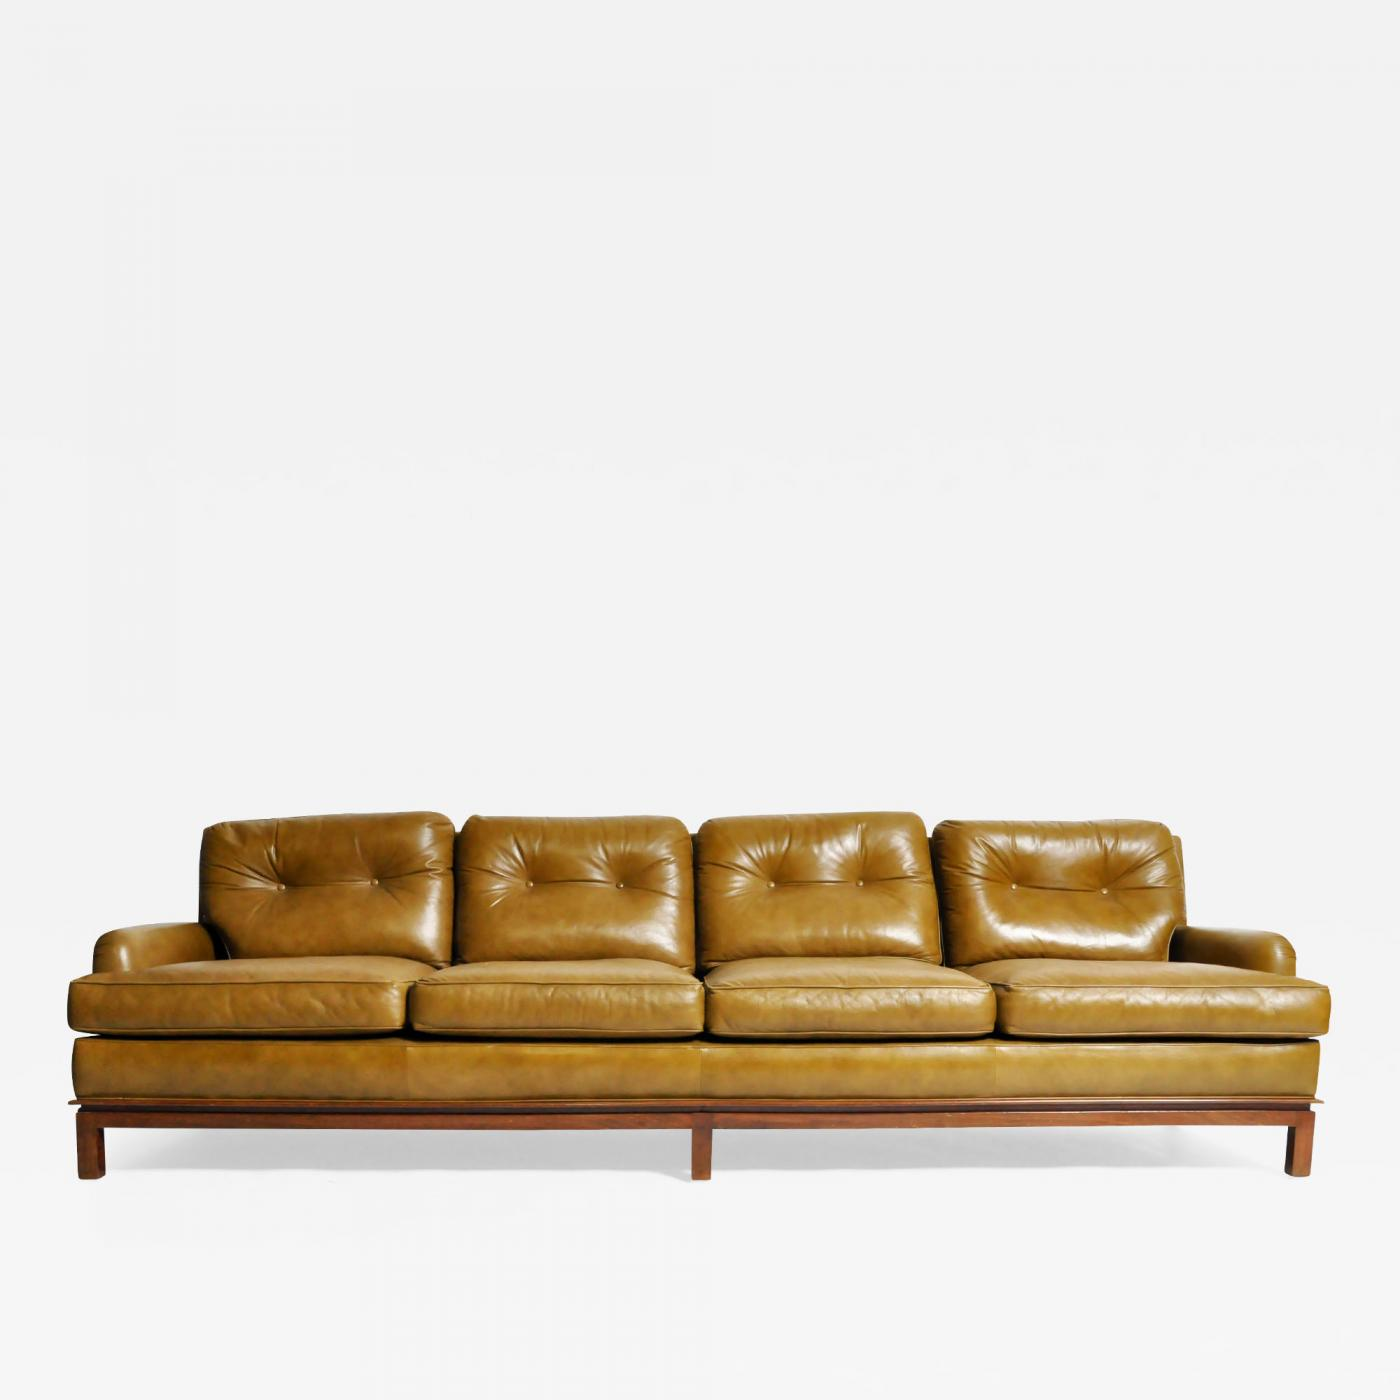 Edward Wormley - Mid-Century Modern Green Leather Sofa with Hardwood Base  by Edward Wormley